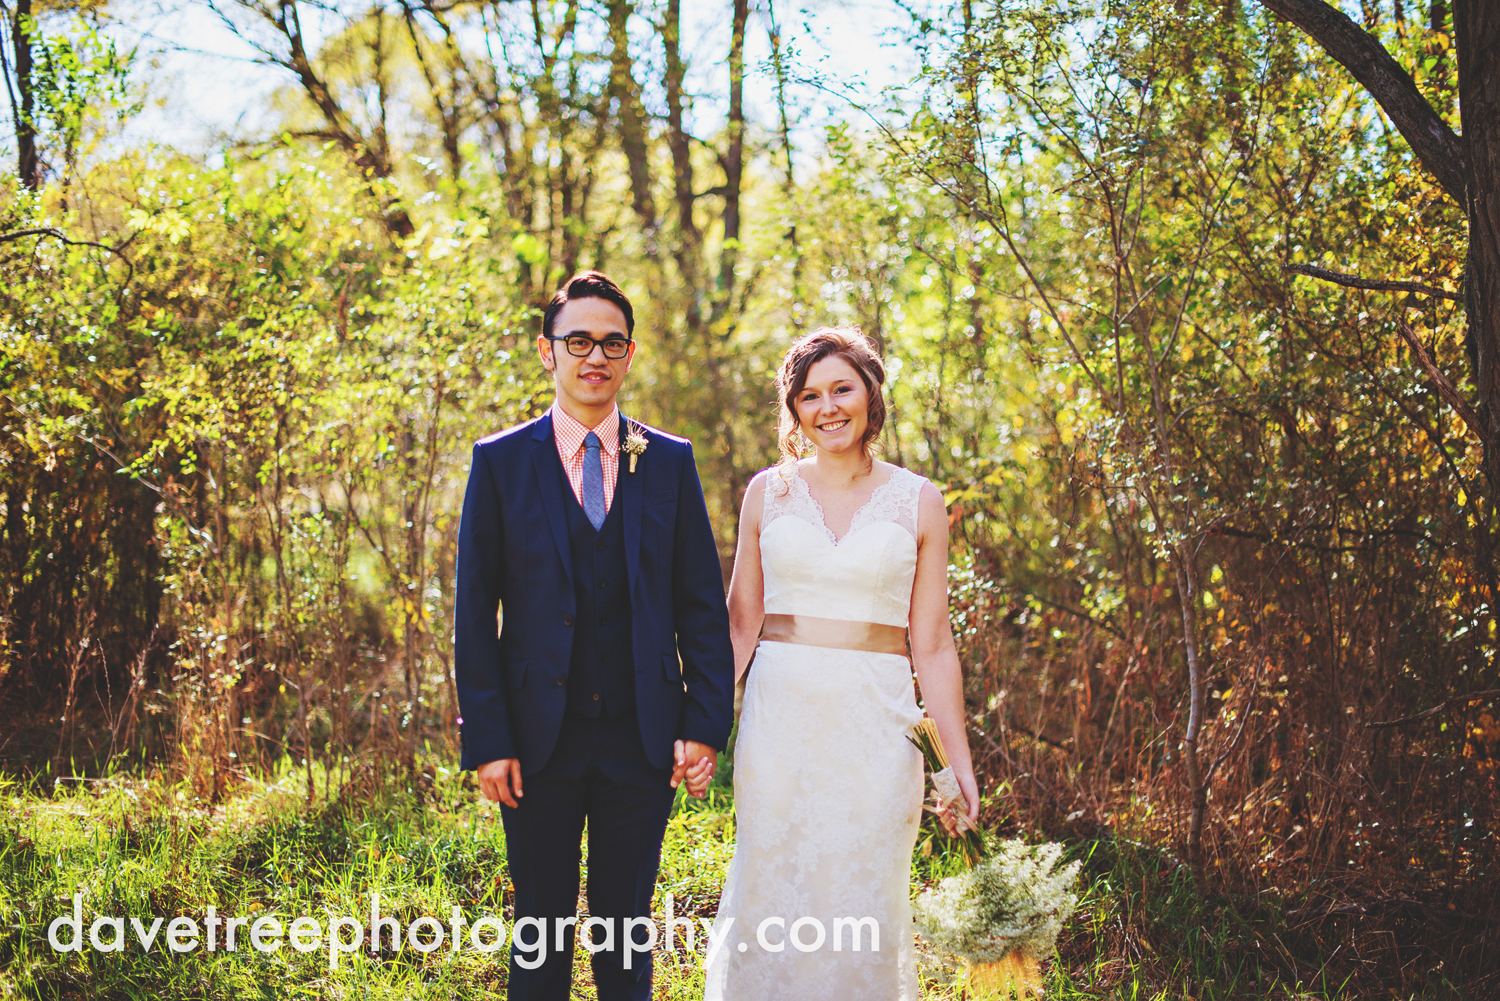 benton_harbor_wedding_photographer_blue_dress_barn_08.jpg